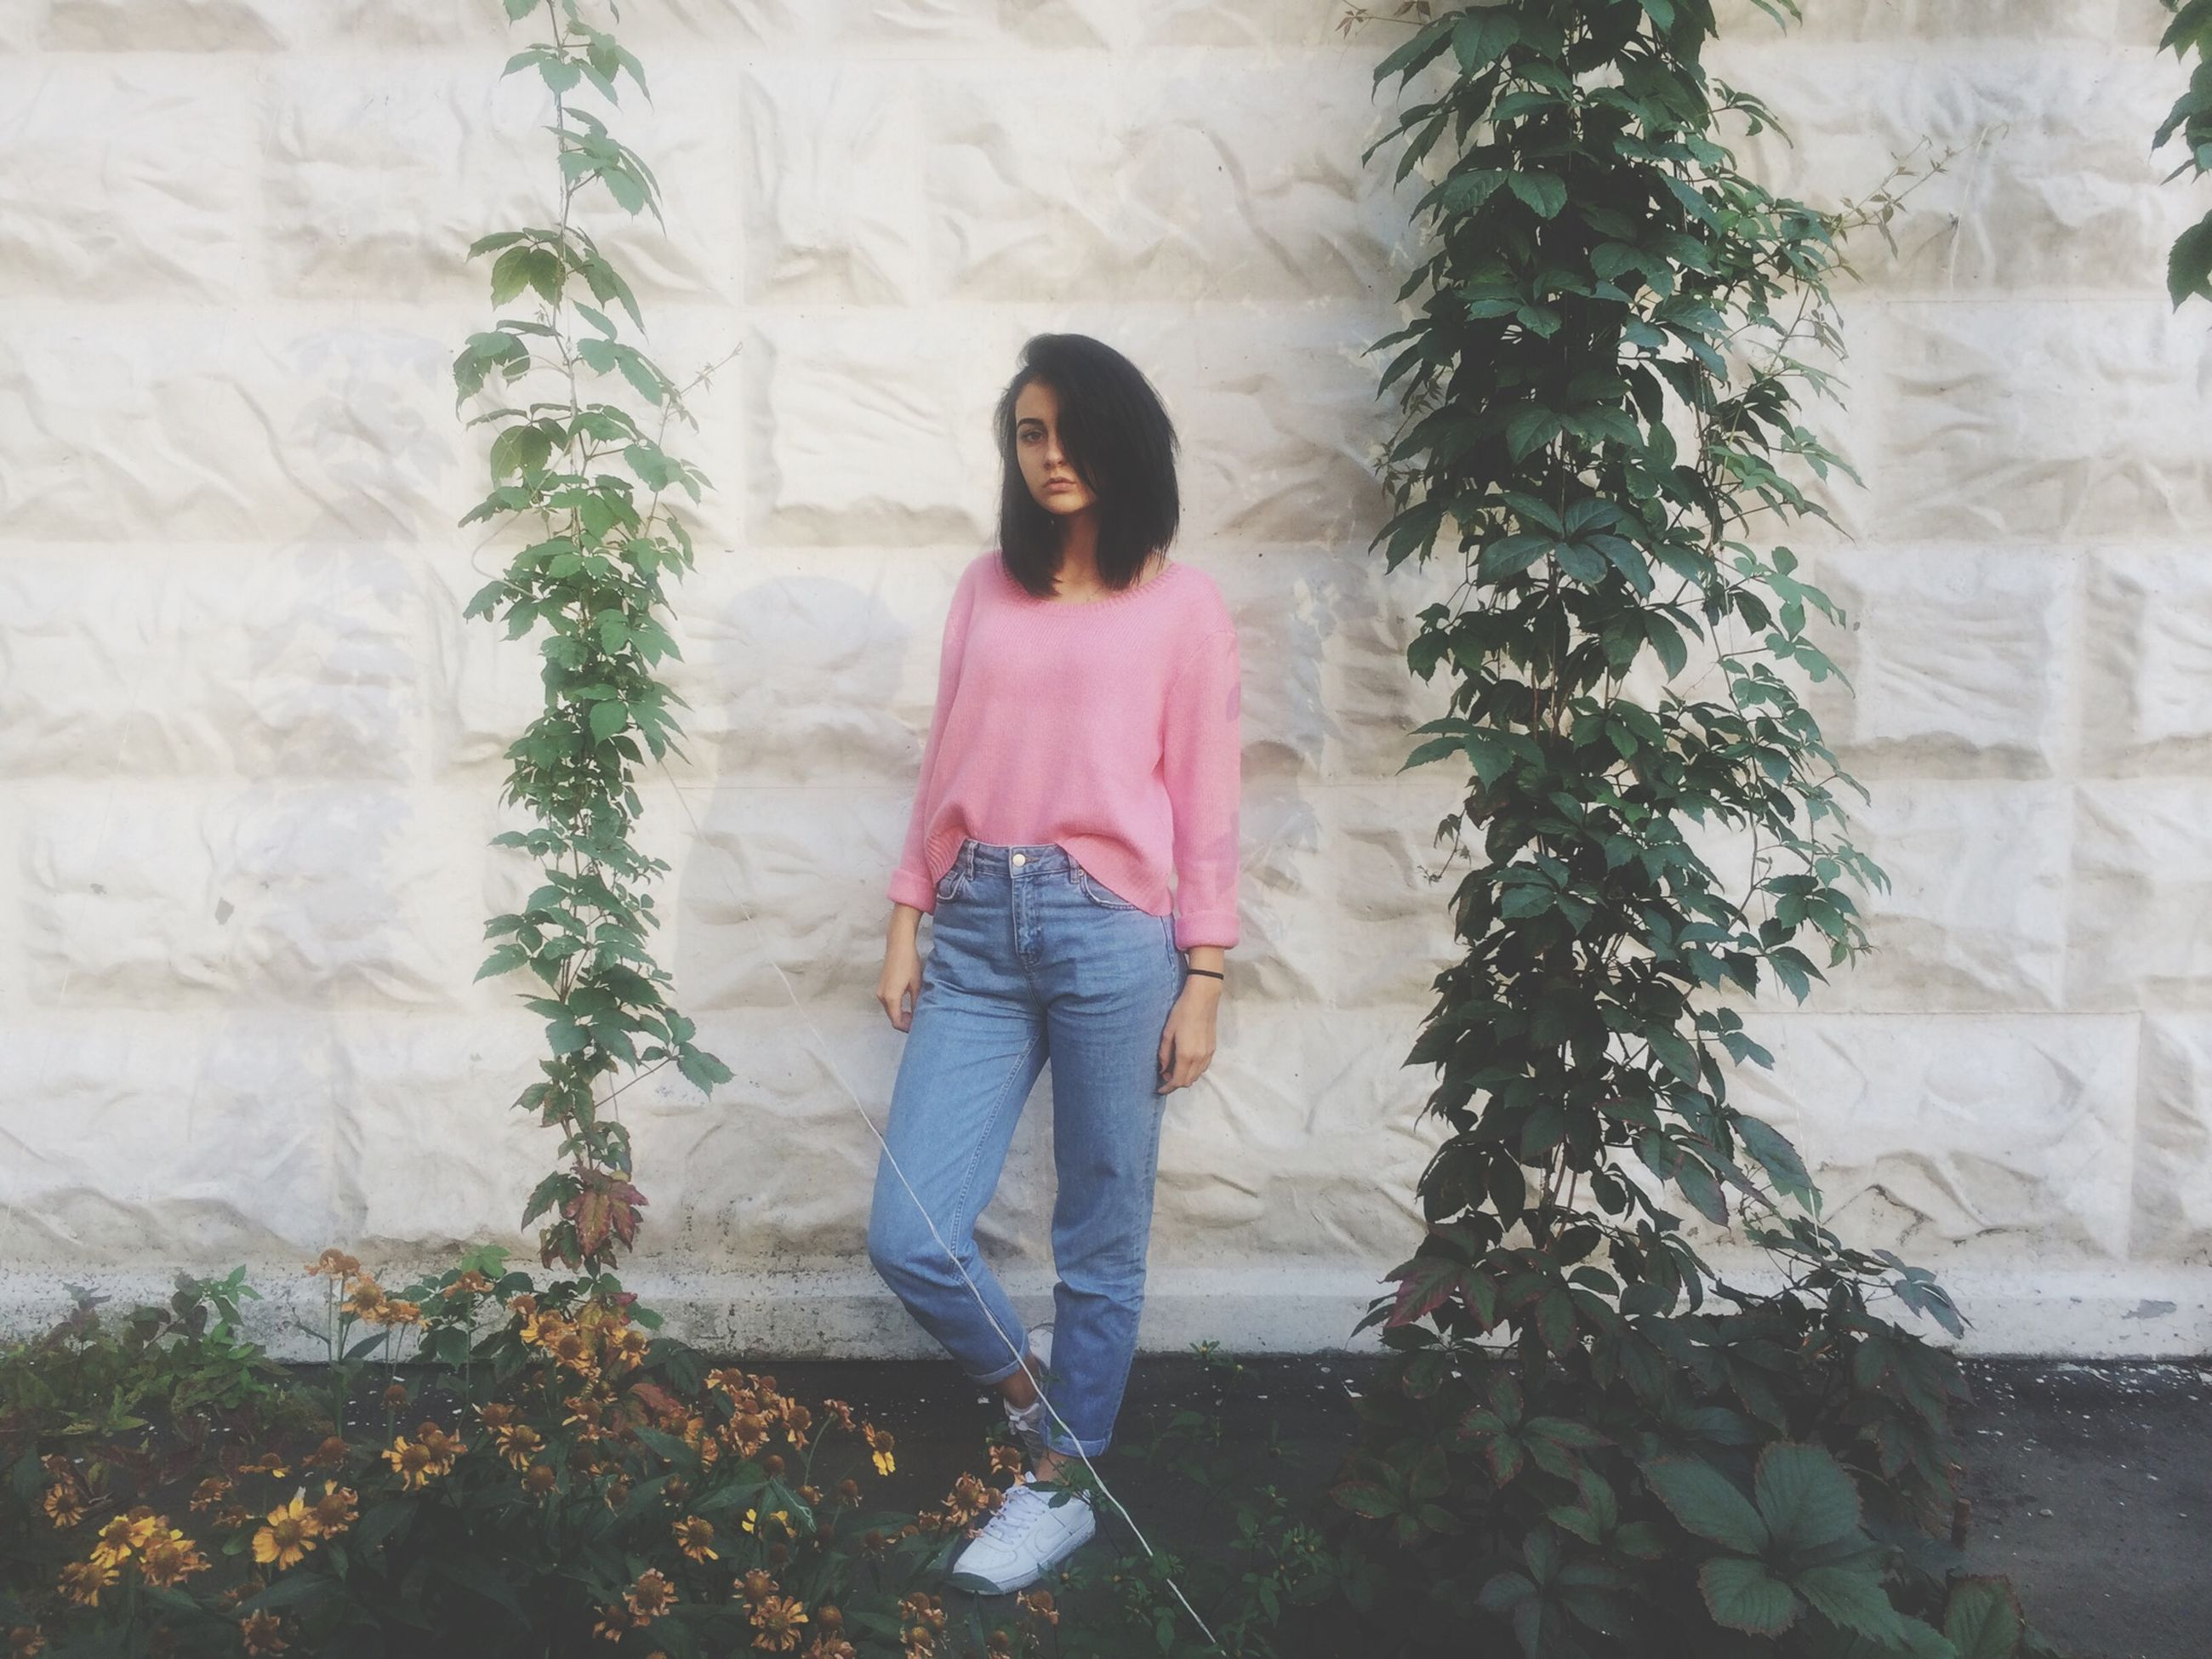 standing, lifestyles, casual clothing, wall - building feature, young adult, plant, young women, leisure activity, full length, three quarter length, person, front view, architecture, built structure, wall, growth, day